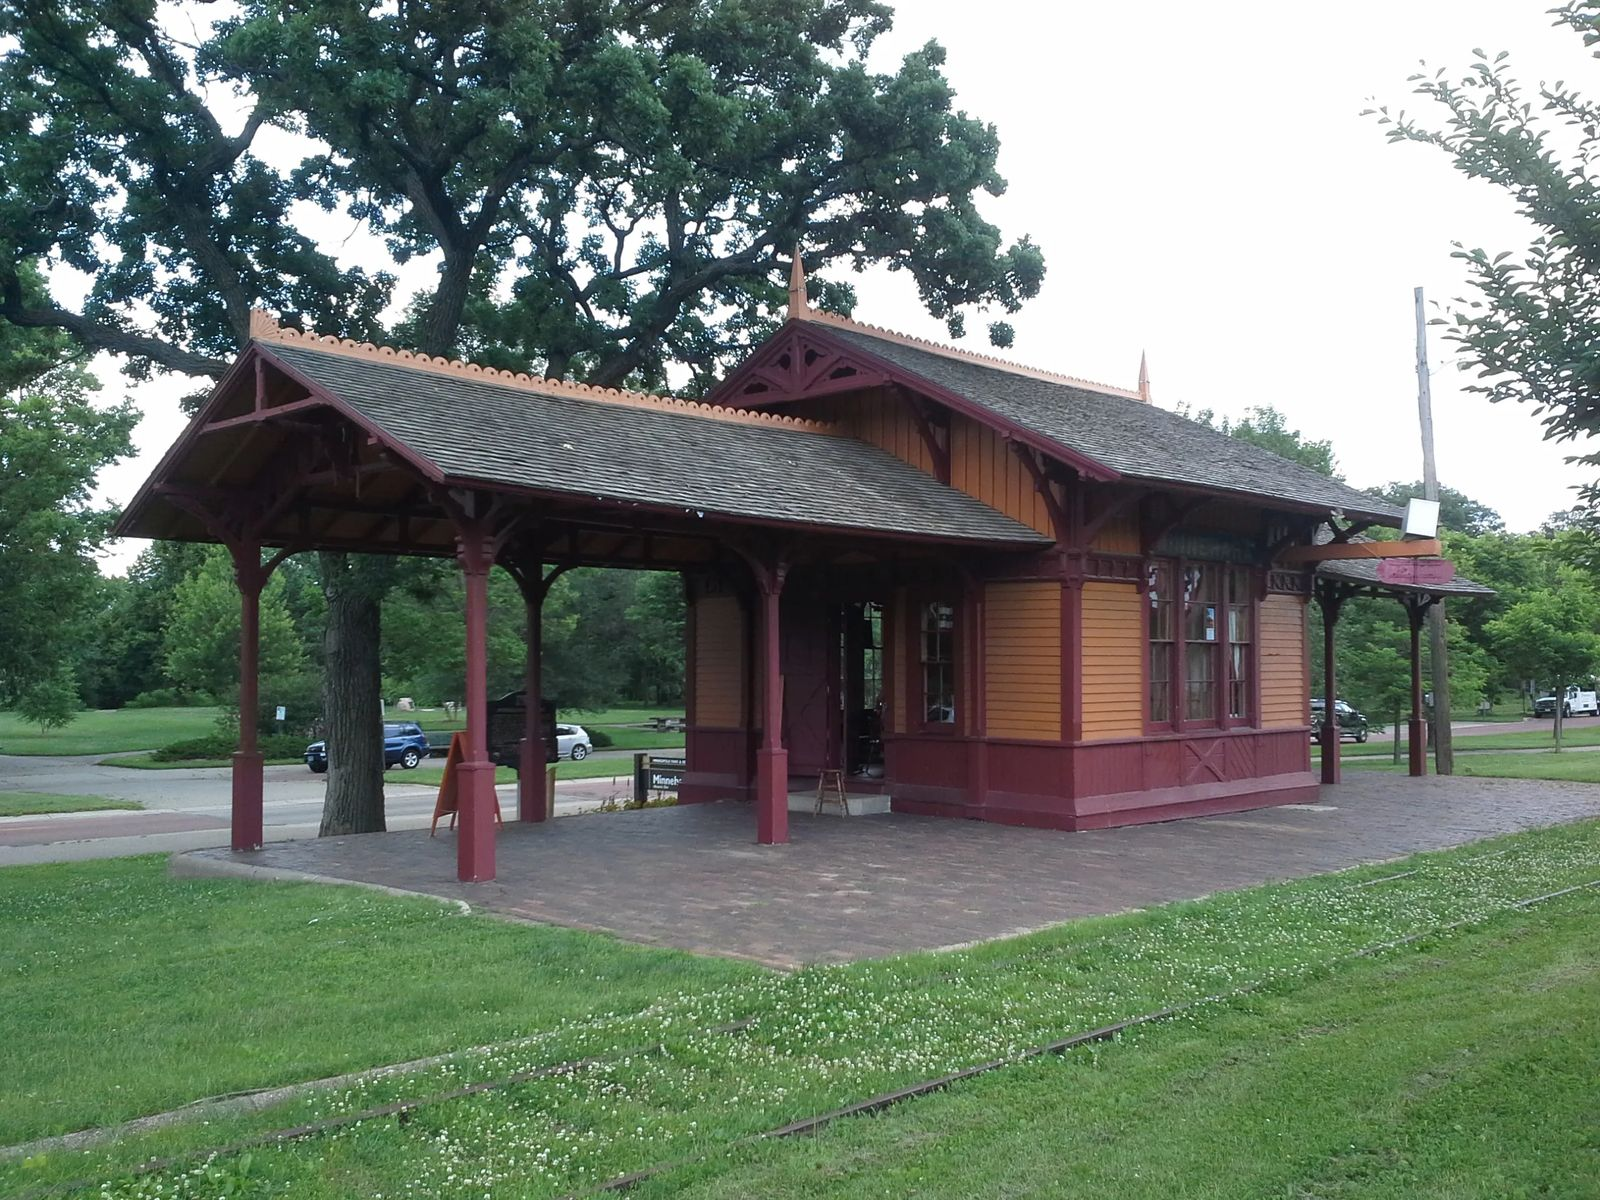 Photo of the Minnehaha train depot, known as The Princess, in Minneapolis, Minnesota.